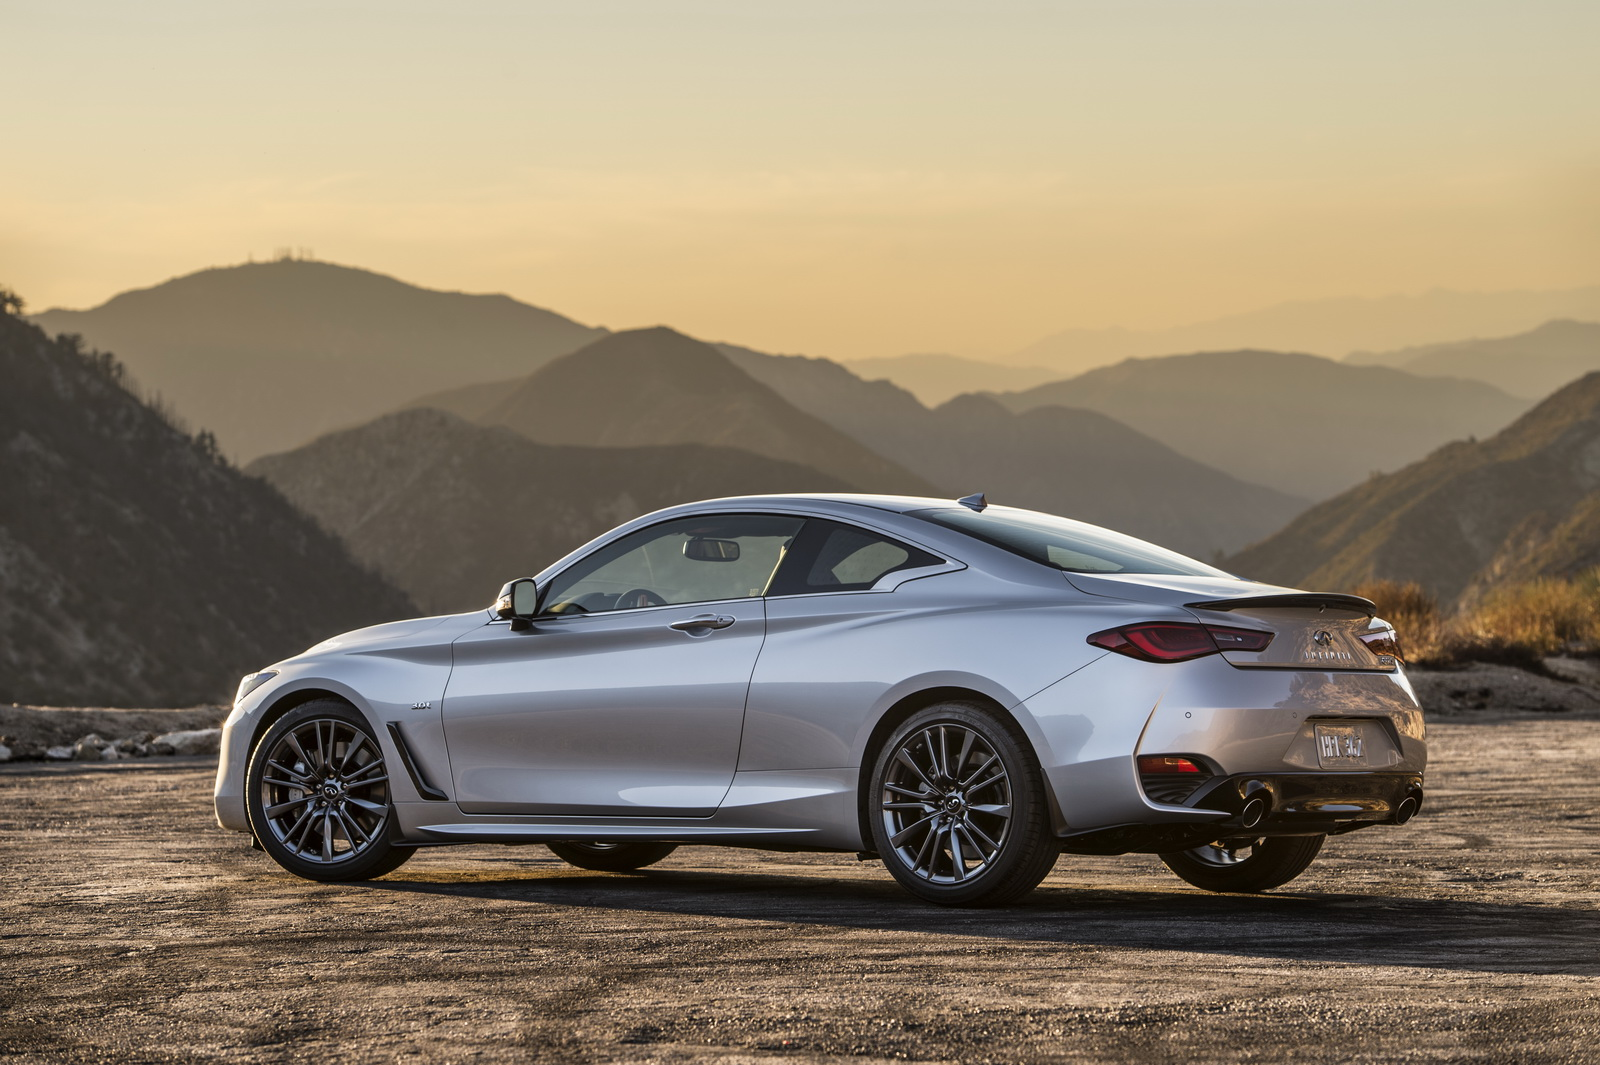 Infiniti Q60 Sport Coupe >> 2017 Infiniti Q60 3.0t Sport Offers 300 HP From $49,205 | Carscoops